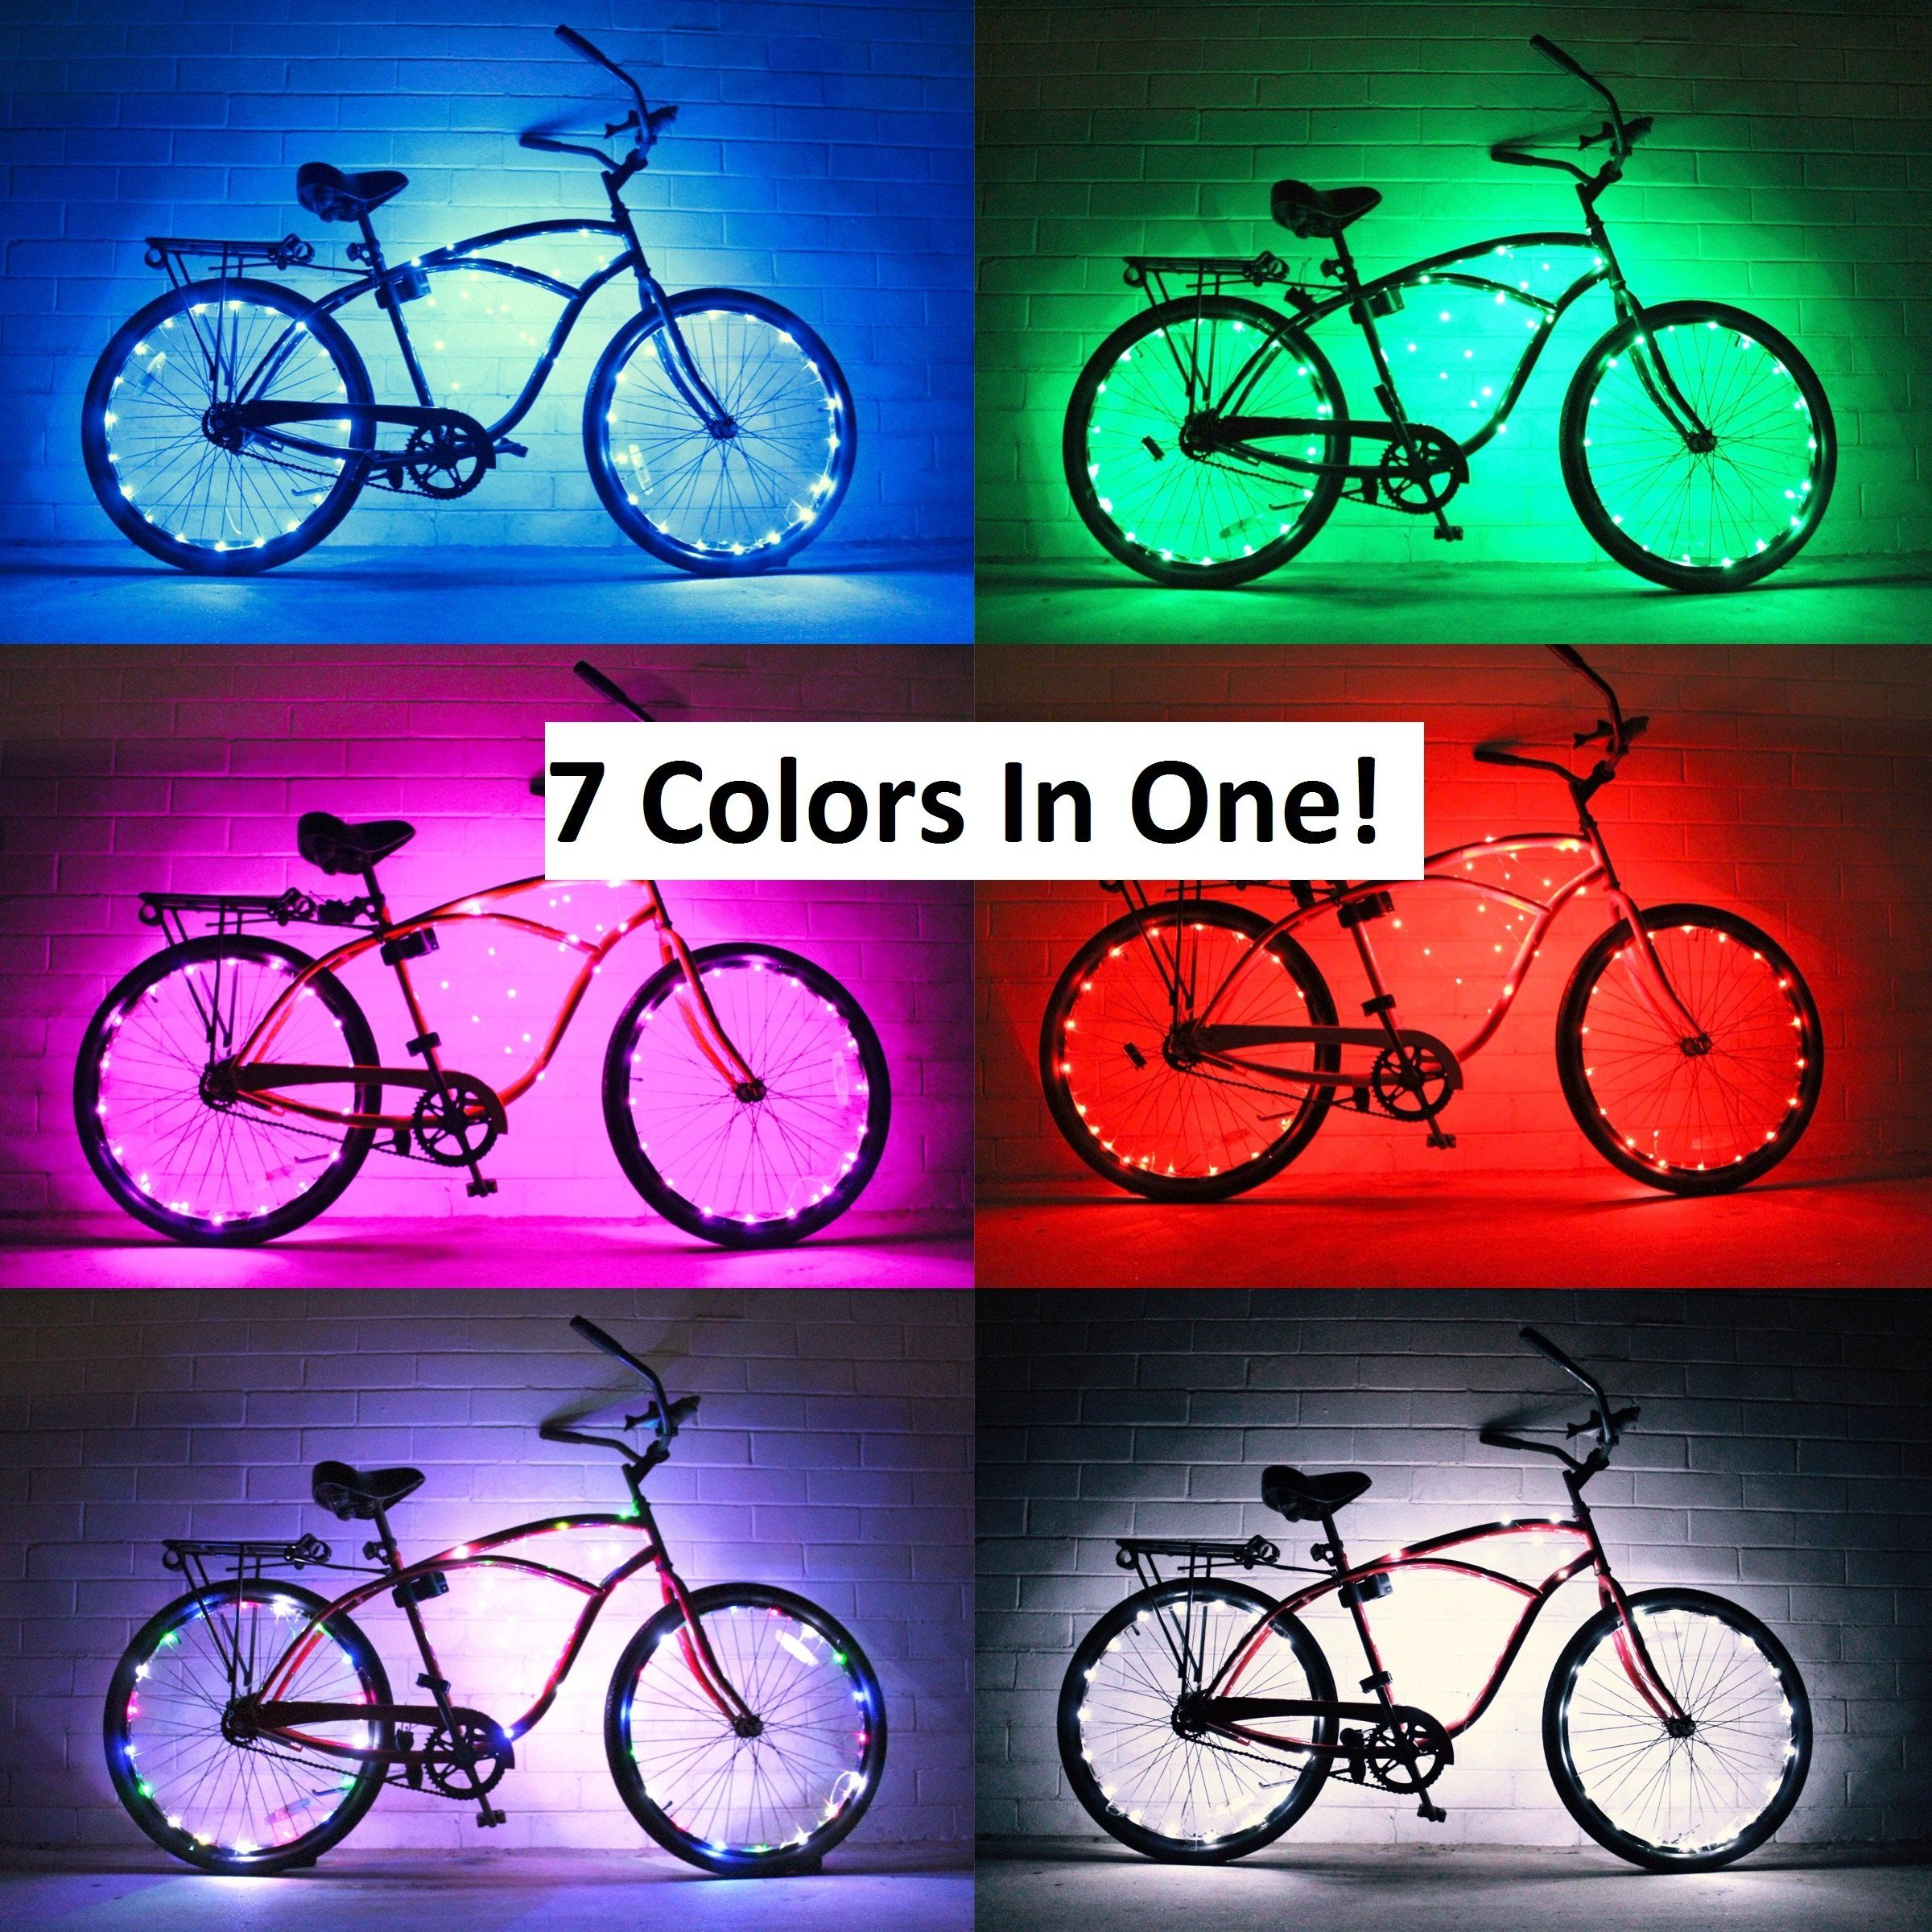 Pin On Cycling Accessories Ideas